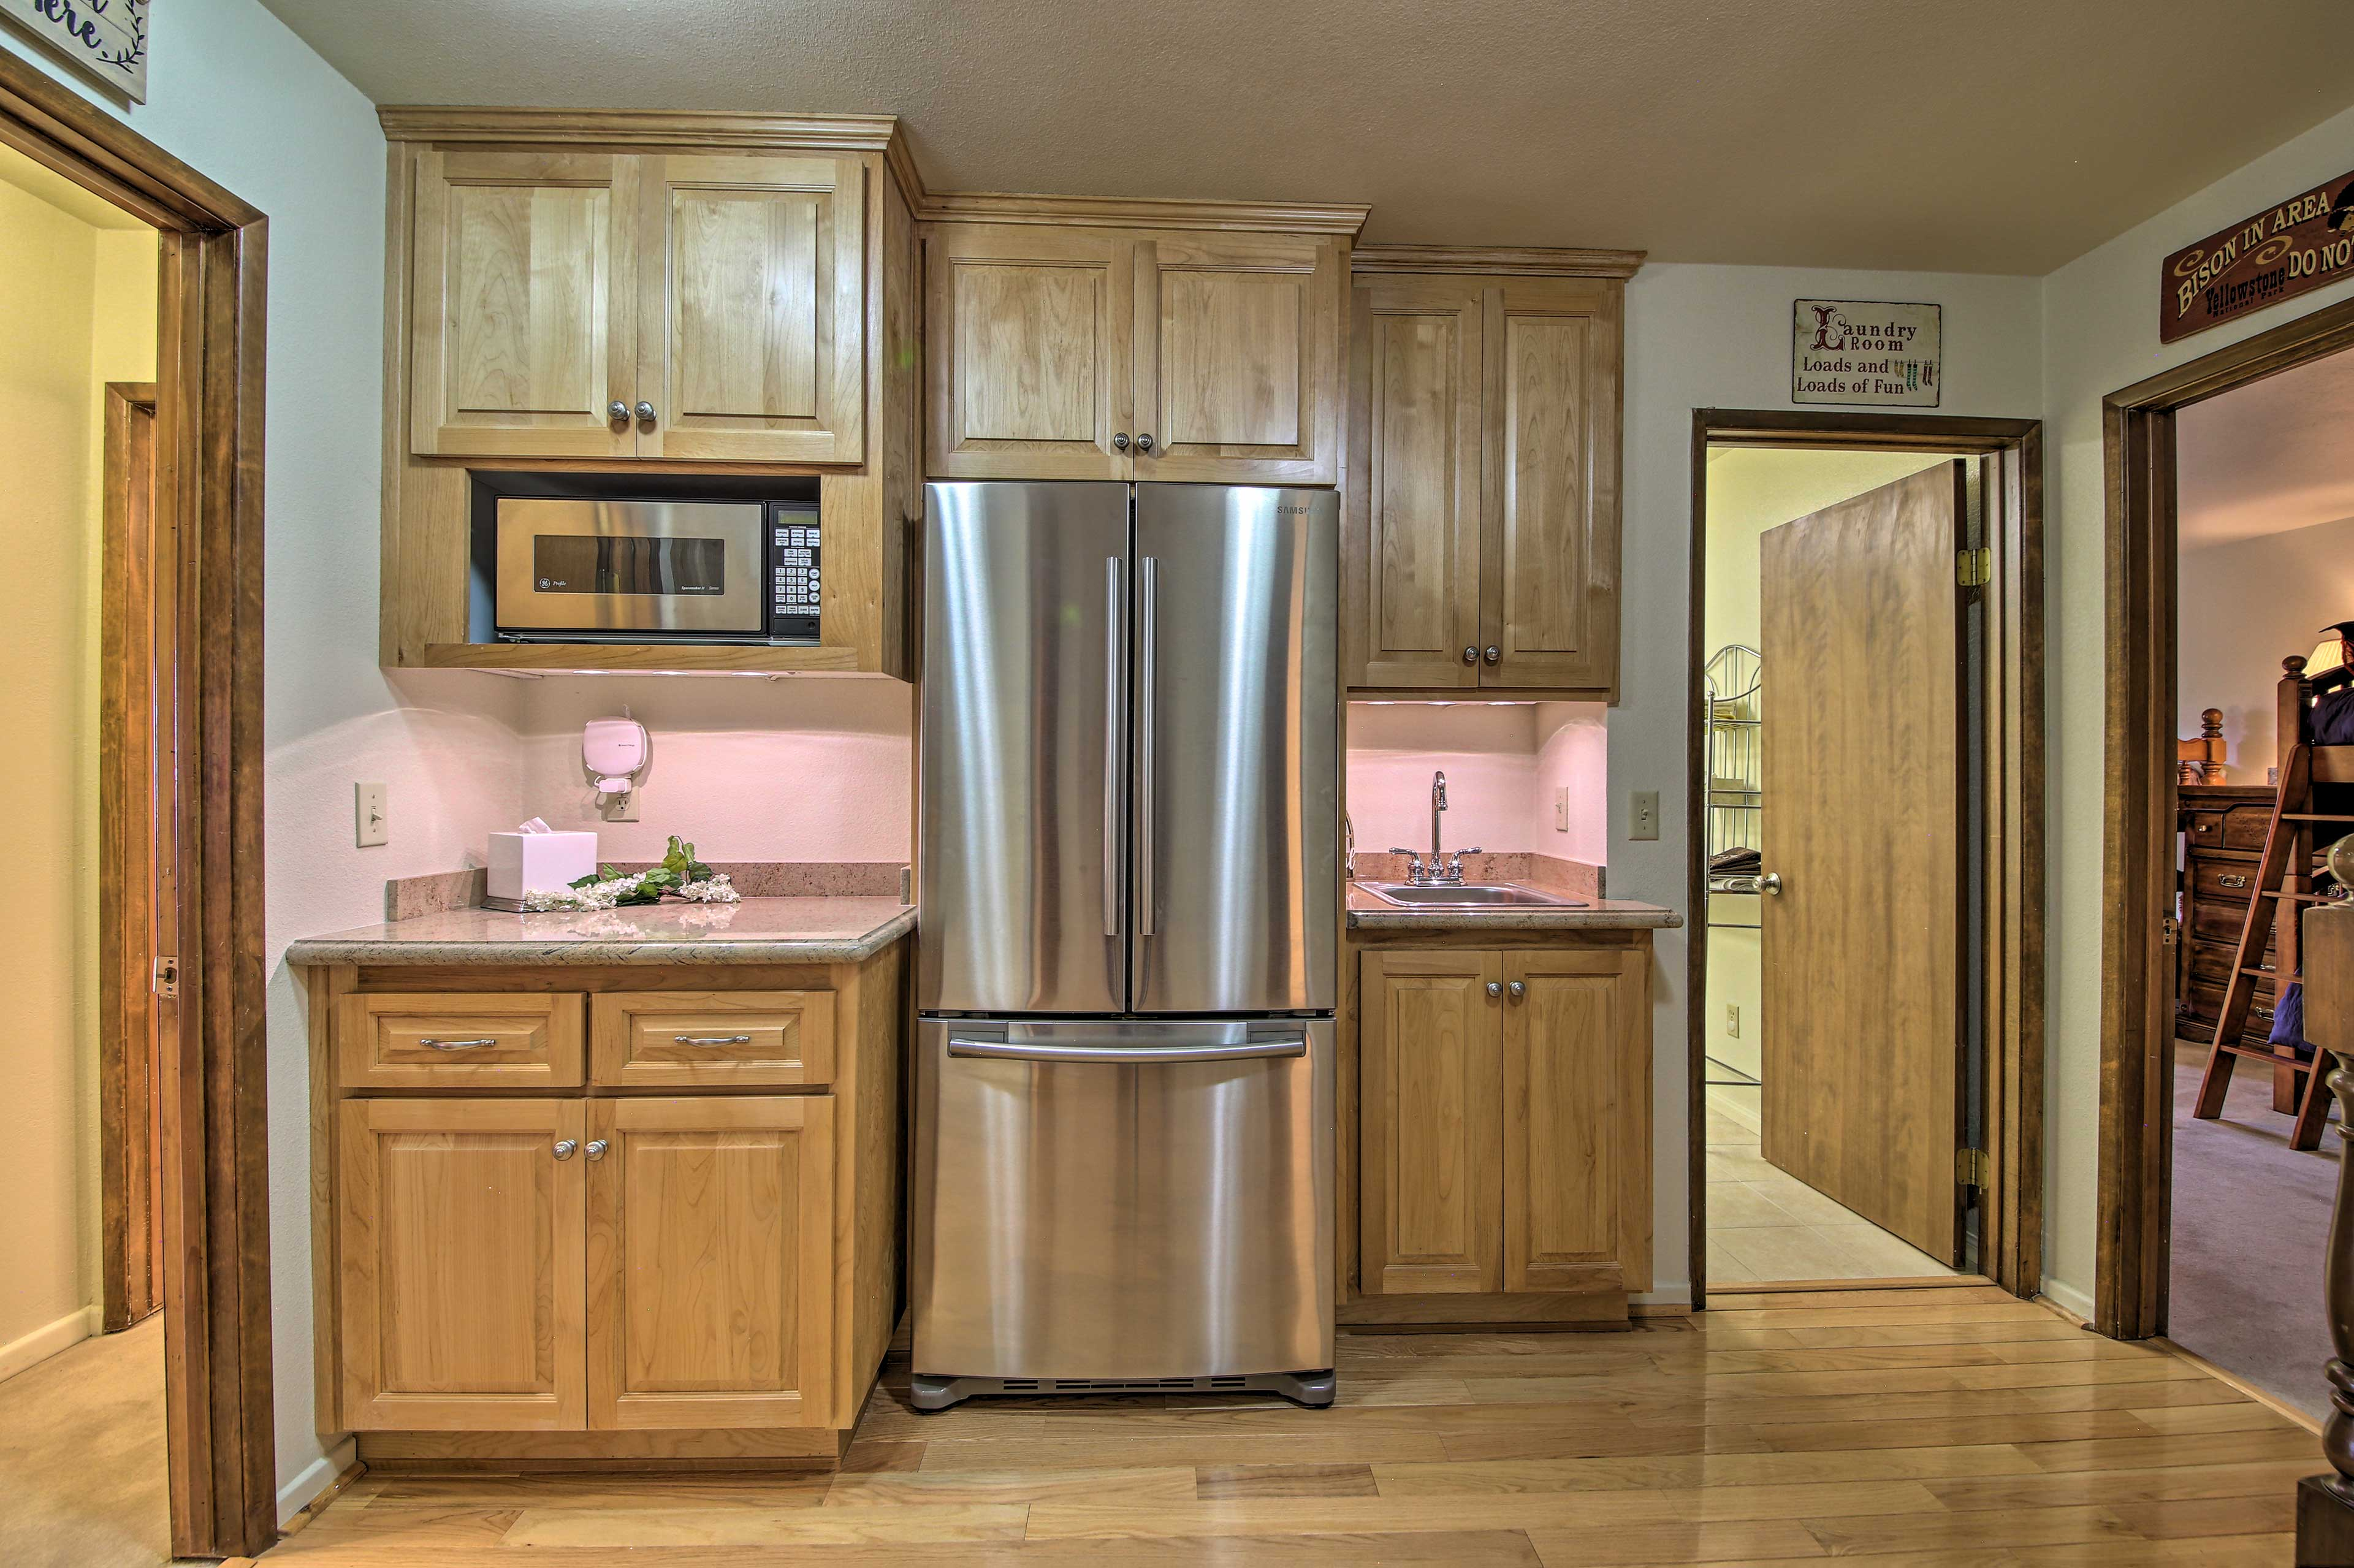 Grab a refreshing drink from the fridge in the well-equipped kitchen.